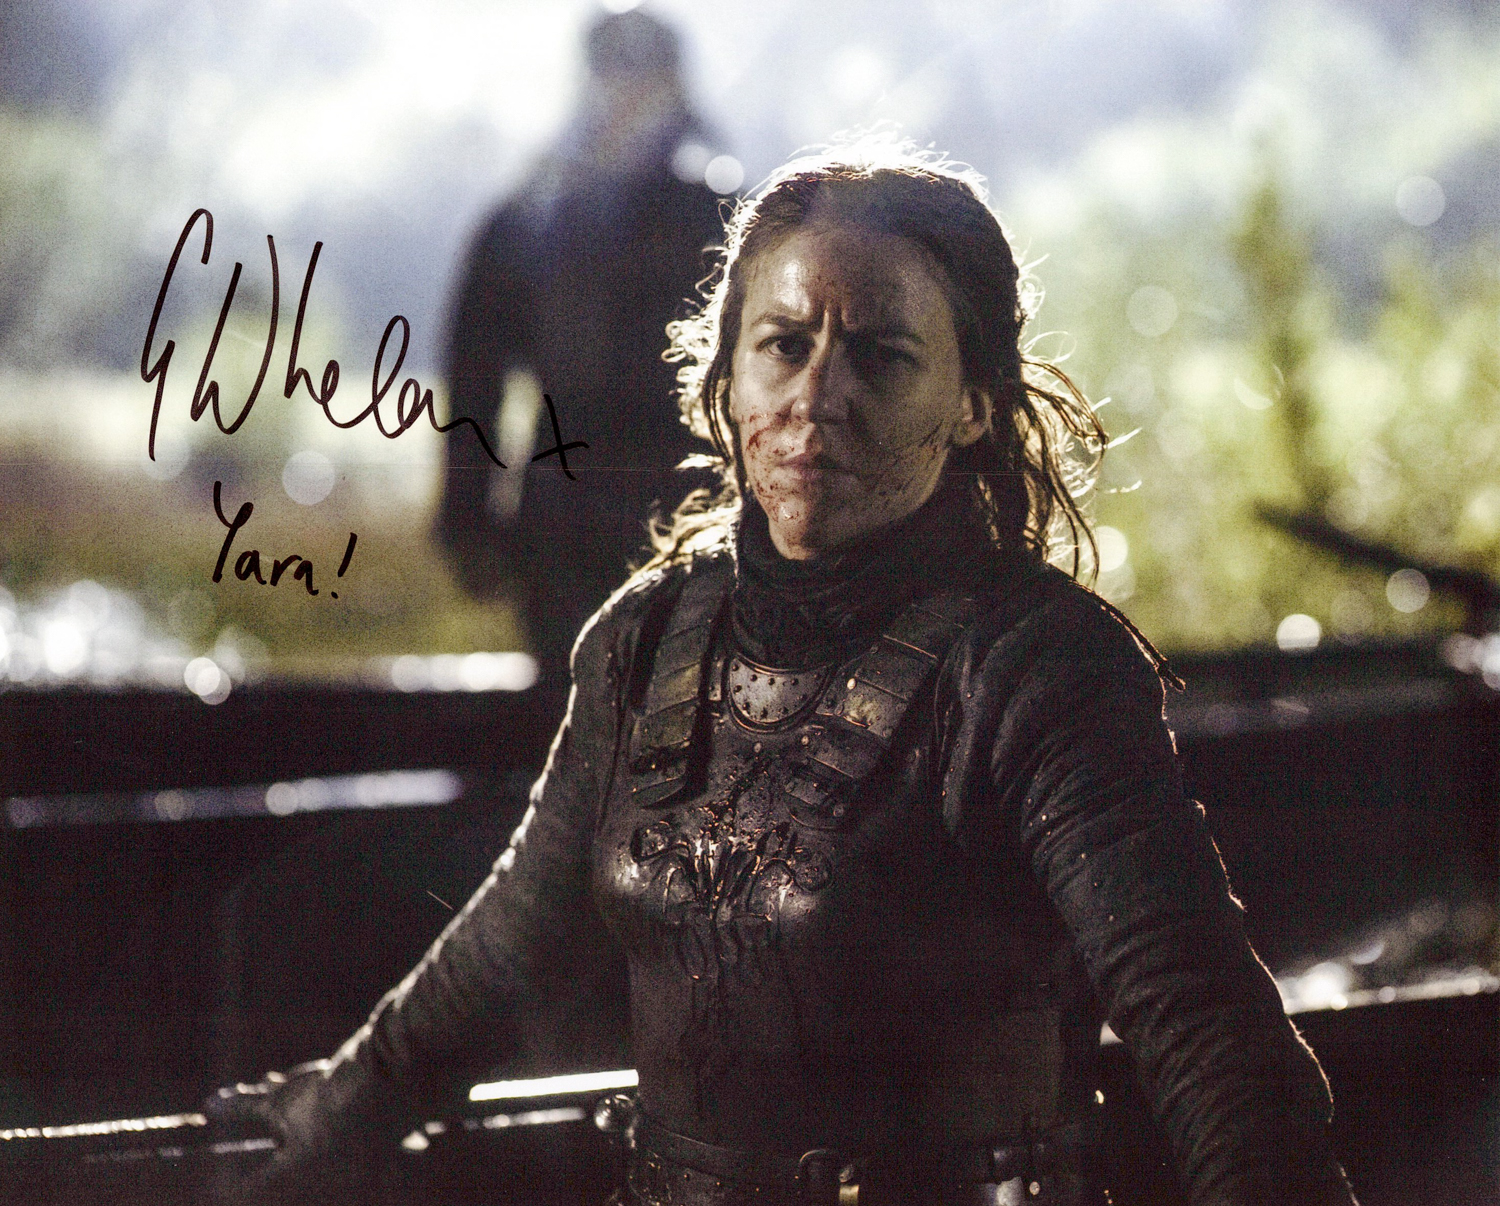 Gemma Whelan Original Autogramm auf Foto 20x25cm - Game of Thrones